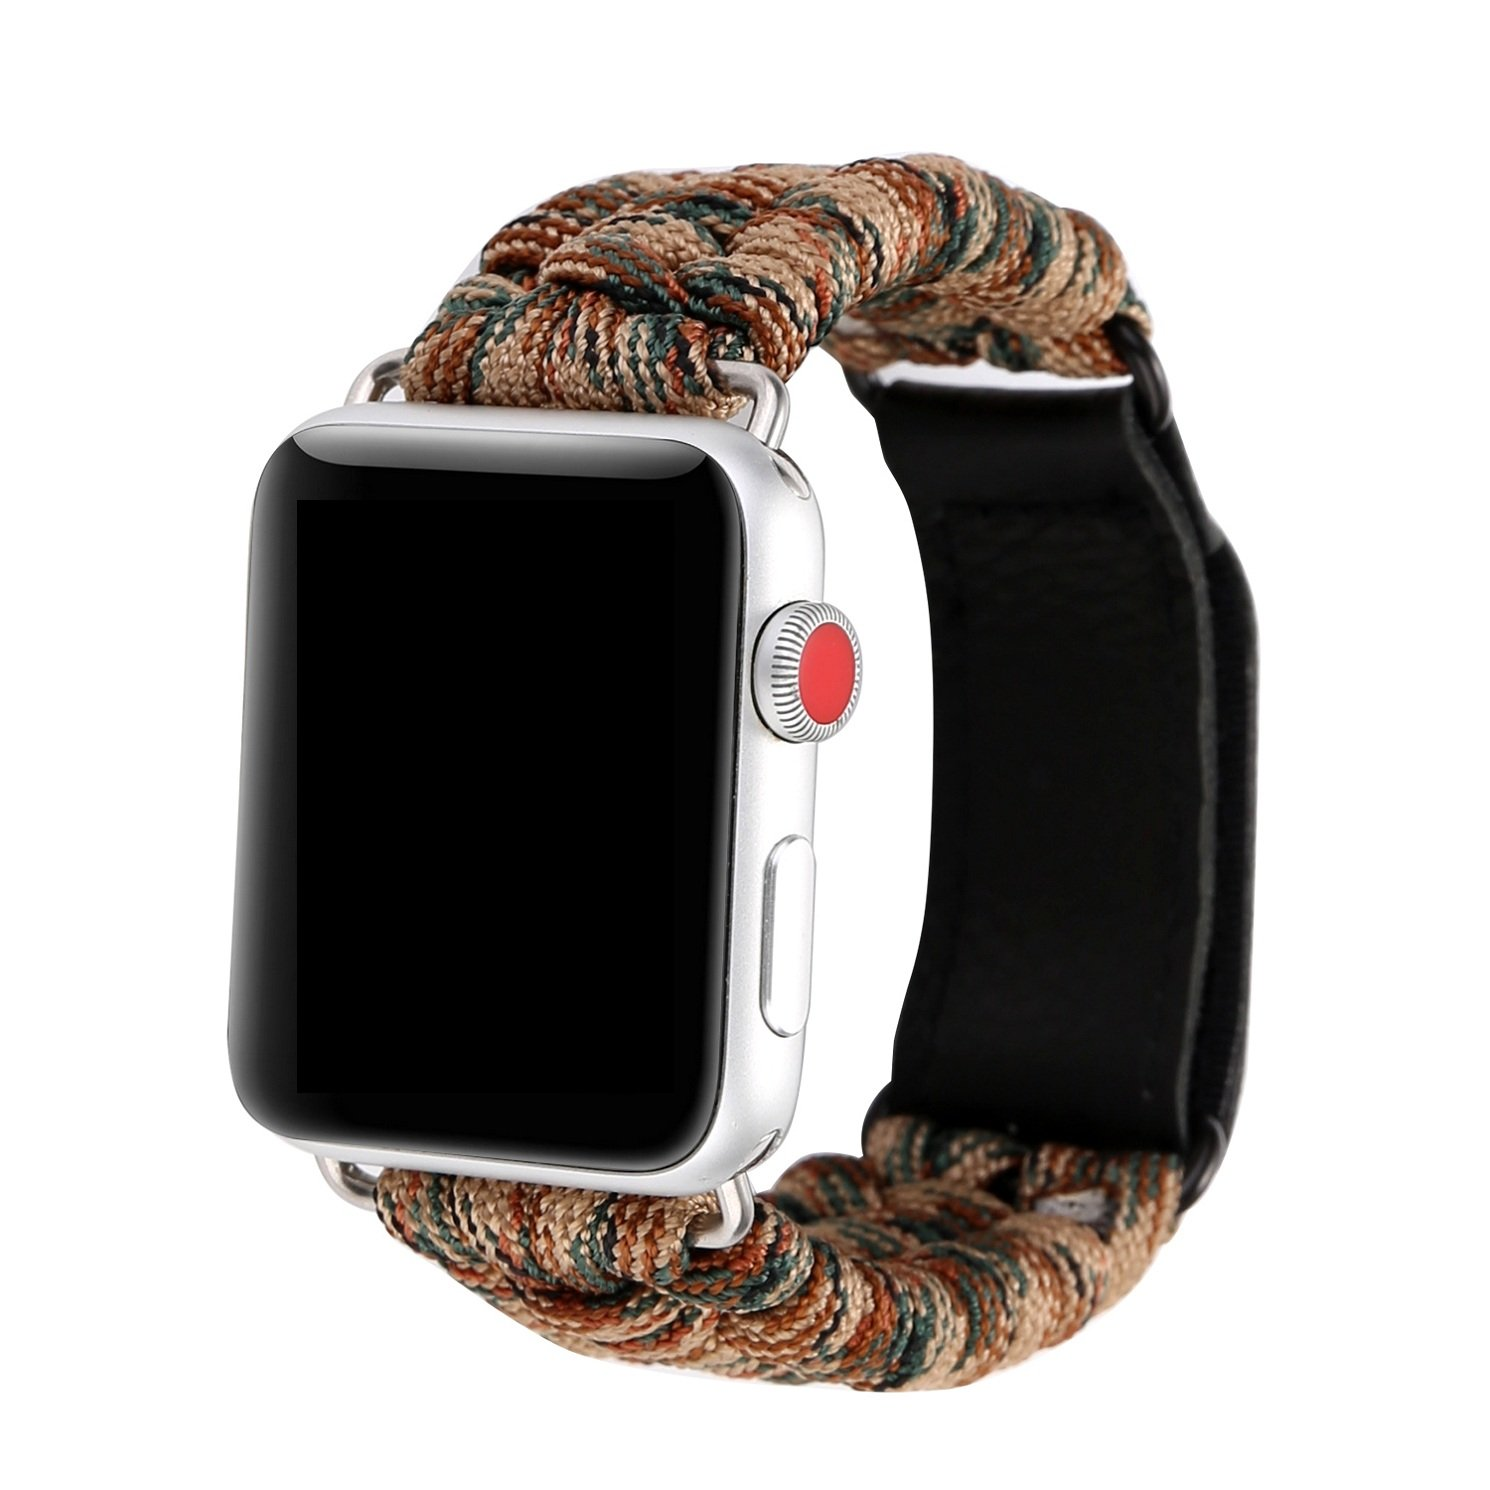 Juzzhou Band For Apple Watch iWatch Series 1/2/3 Sport Style Edition Man Woman Replacement Plait Textile Wriststrap Bracelet Wristband Wrist Strap With Adapter Magic Clasp Camouflage Brown Green 42mm